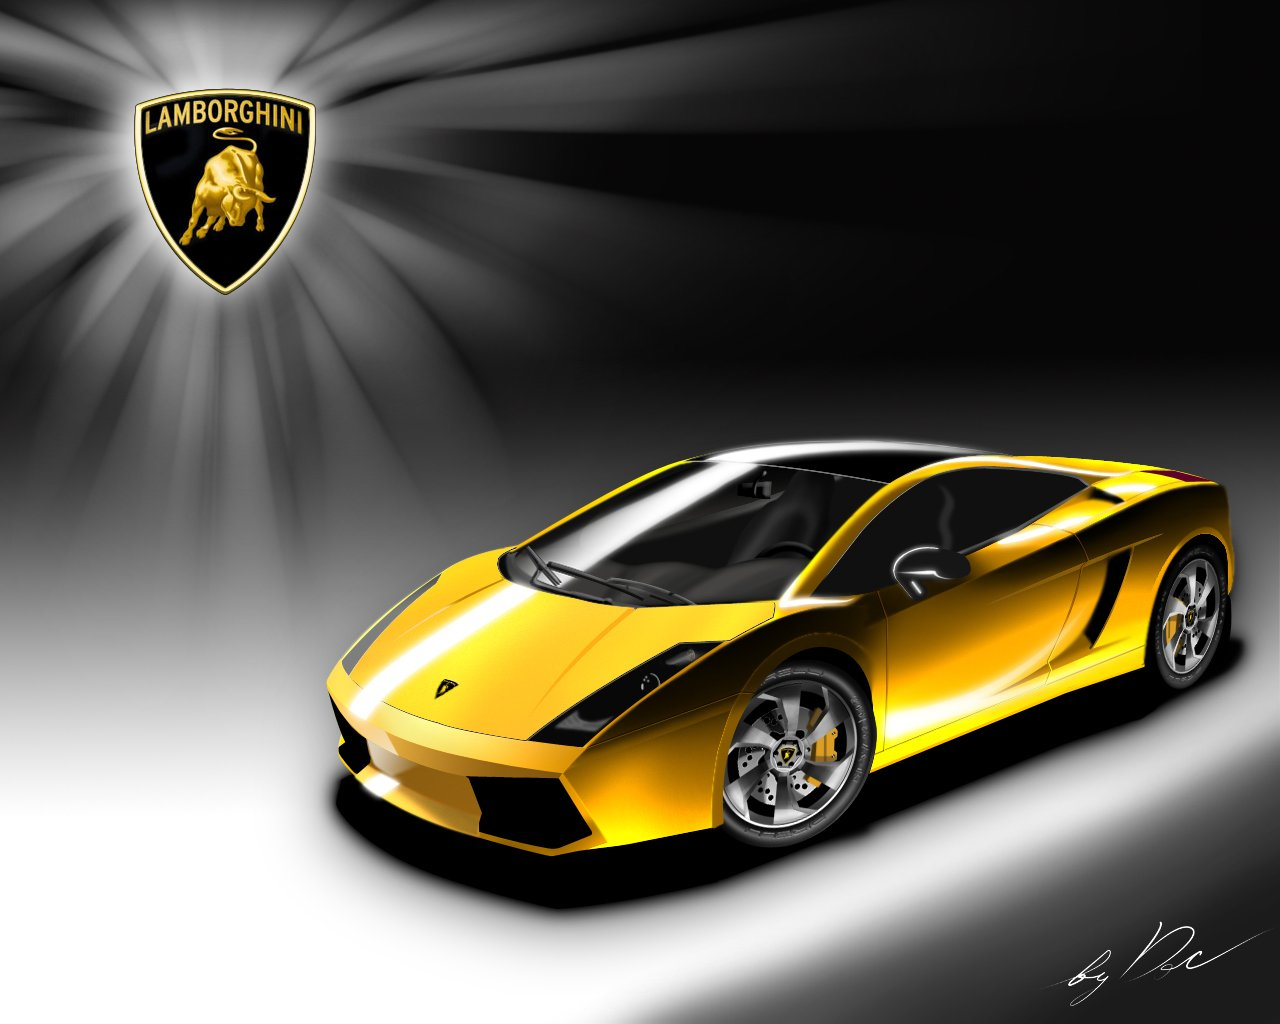 Marvelous Lamborghini Wallpaper Sangar